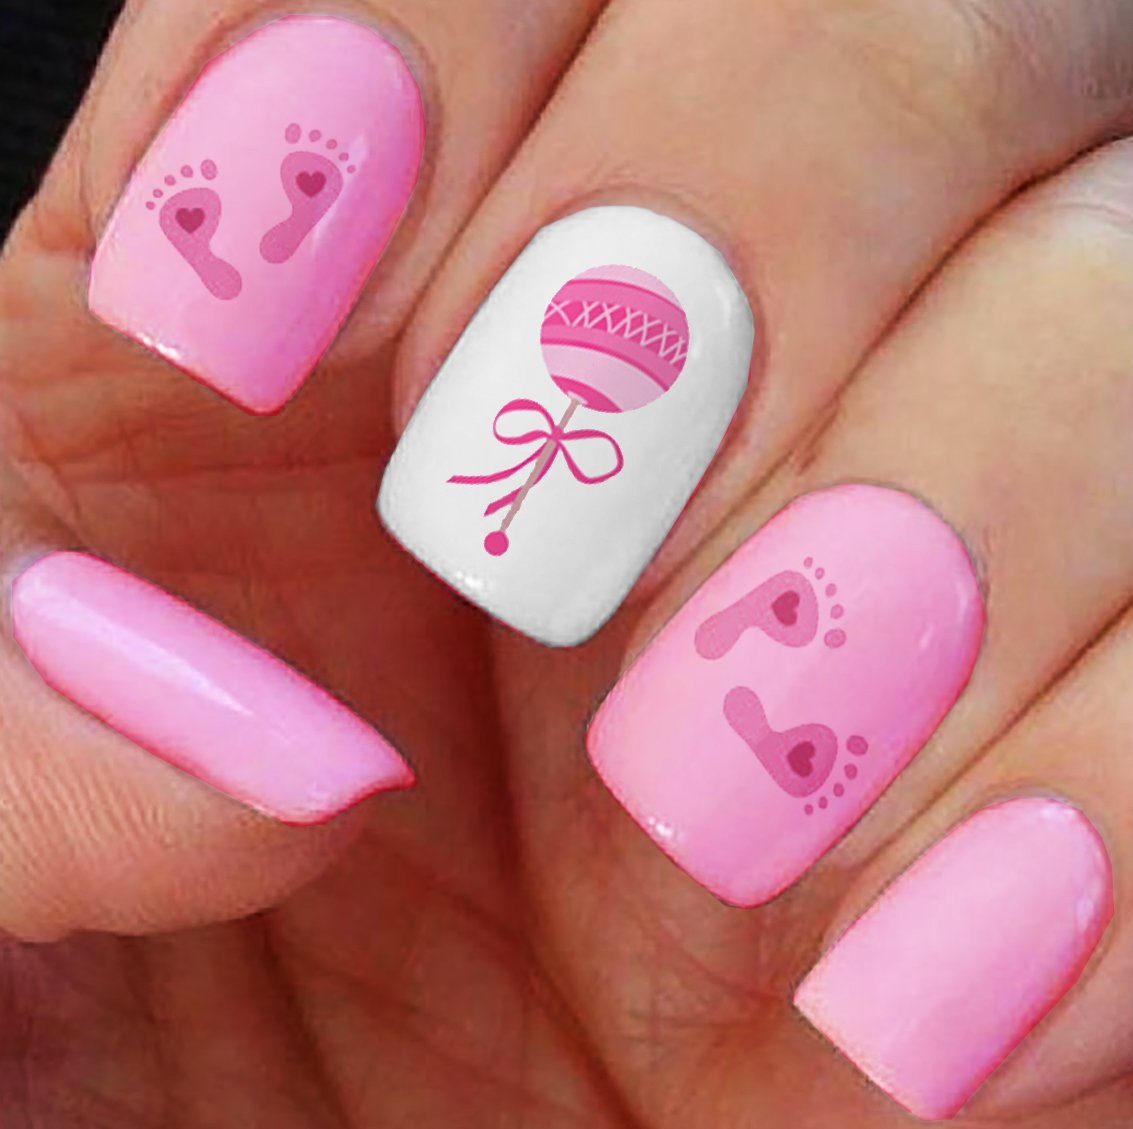 Nail Art Decals   Footprints, Strollers U0026 More! Great Baby Shower Gift!:  Beauty